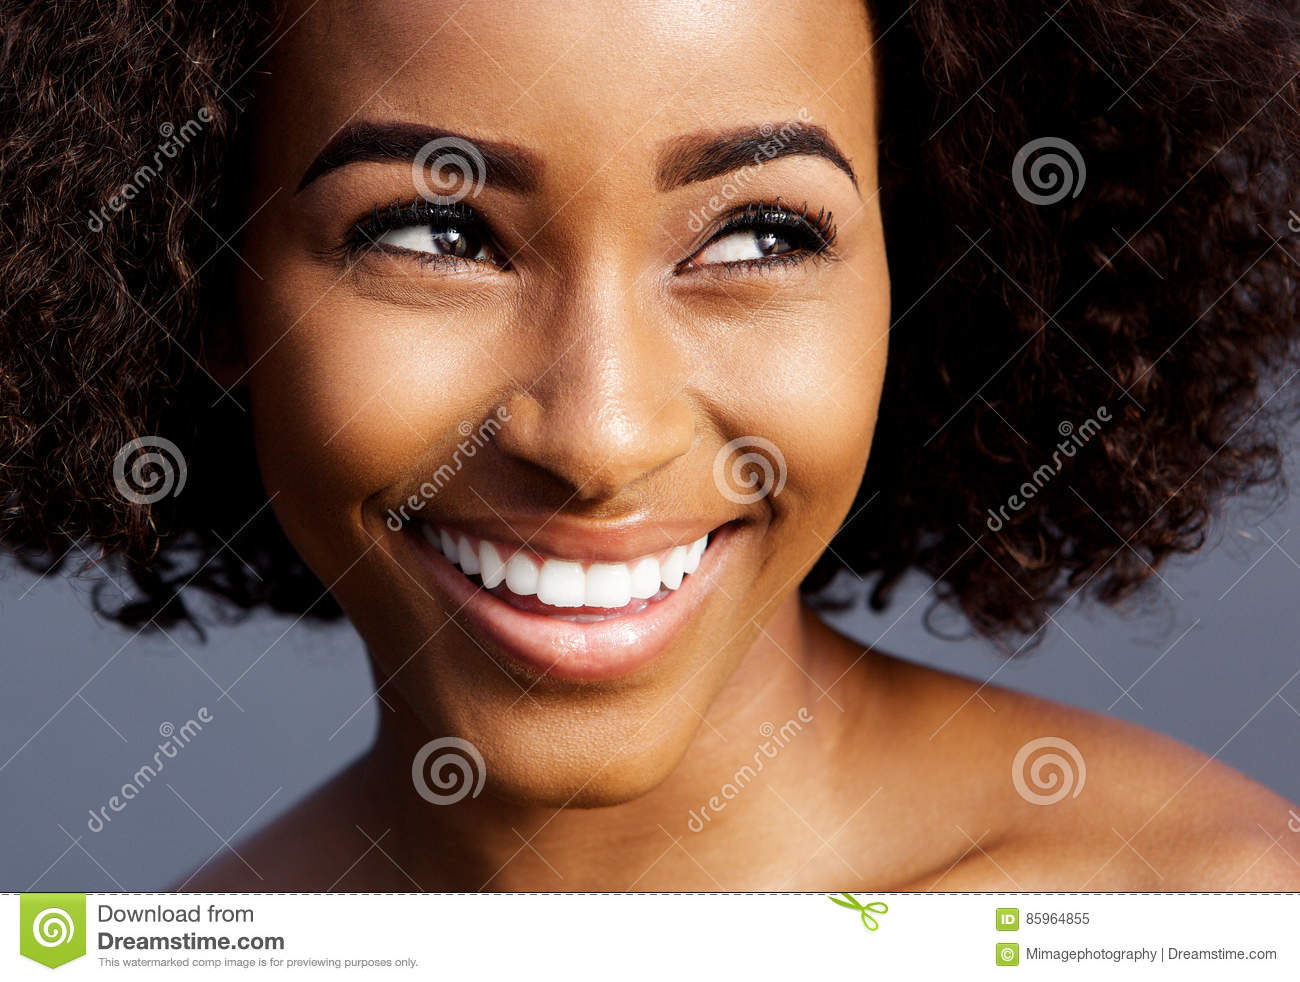 Smiling Young Black Woman With Curly Hair Looking Away Stock Image